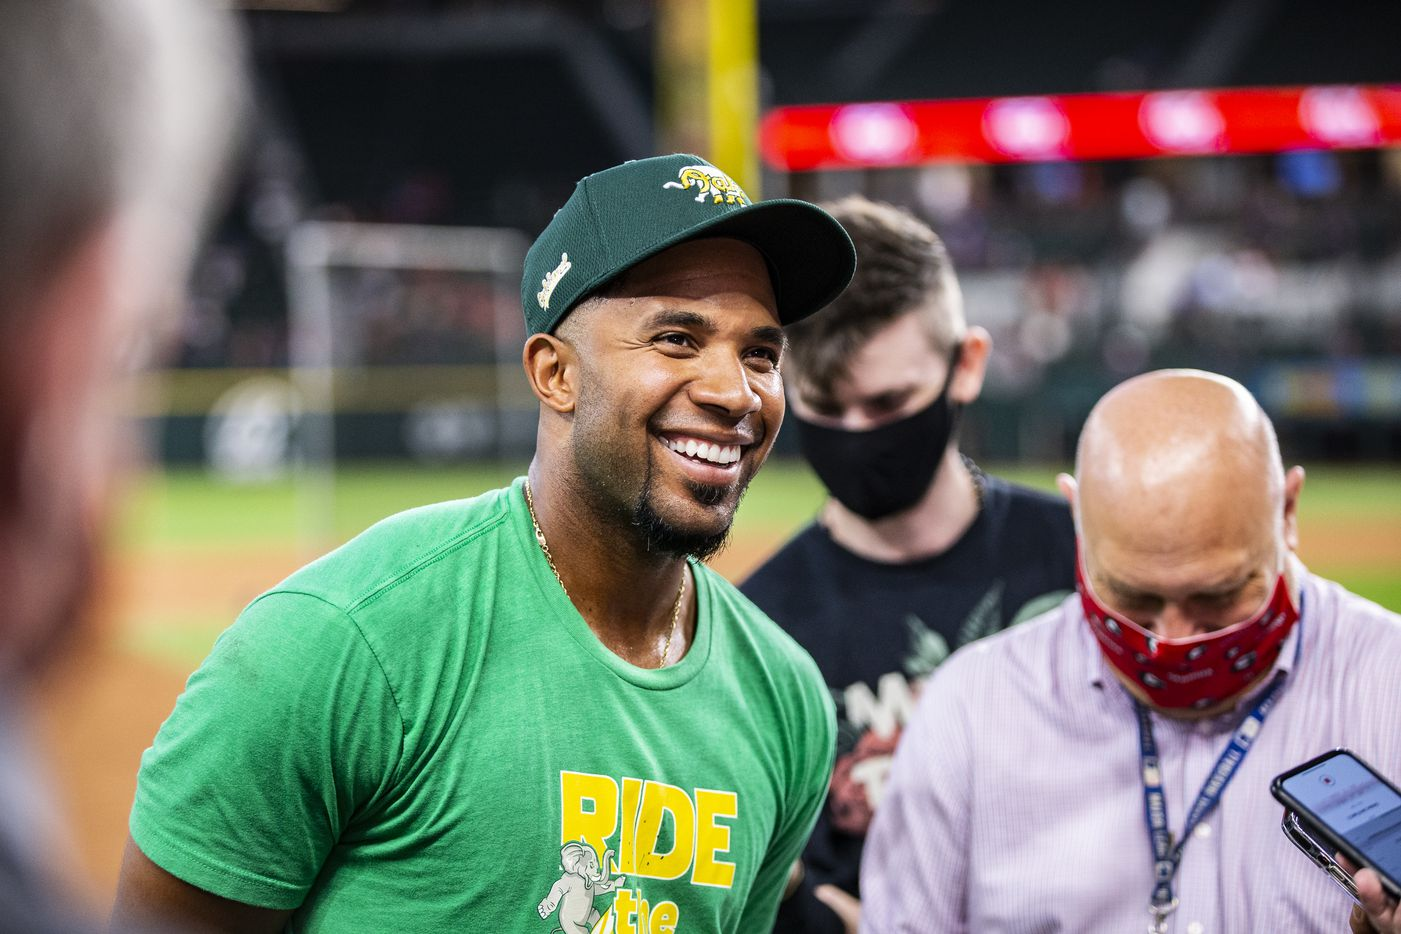 Oakland Athletics shortstop Elvis Andrus speaks to the media before a game against the Texas Rangers in Arlington, Monday, June 21, 2021. (Brandon Wade/Special Contributor)